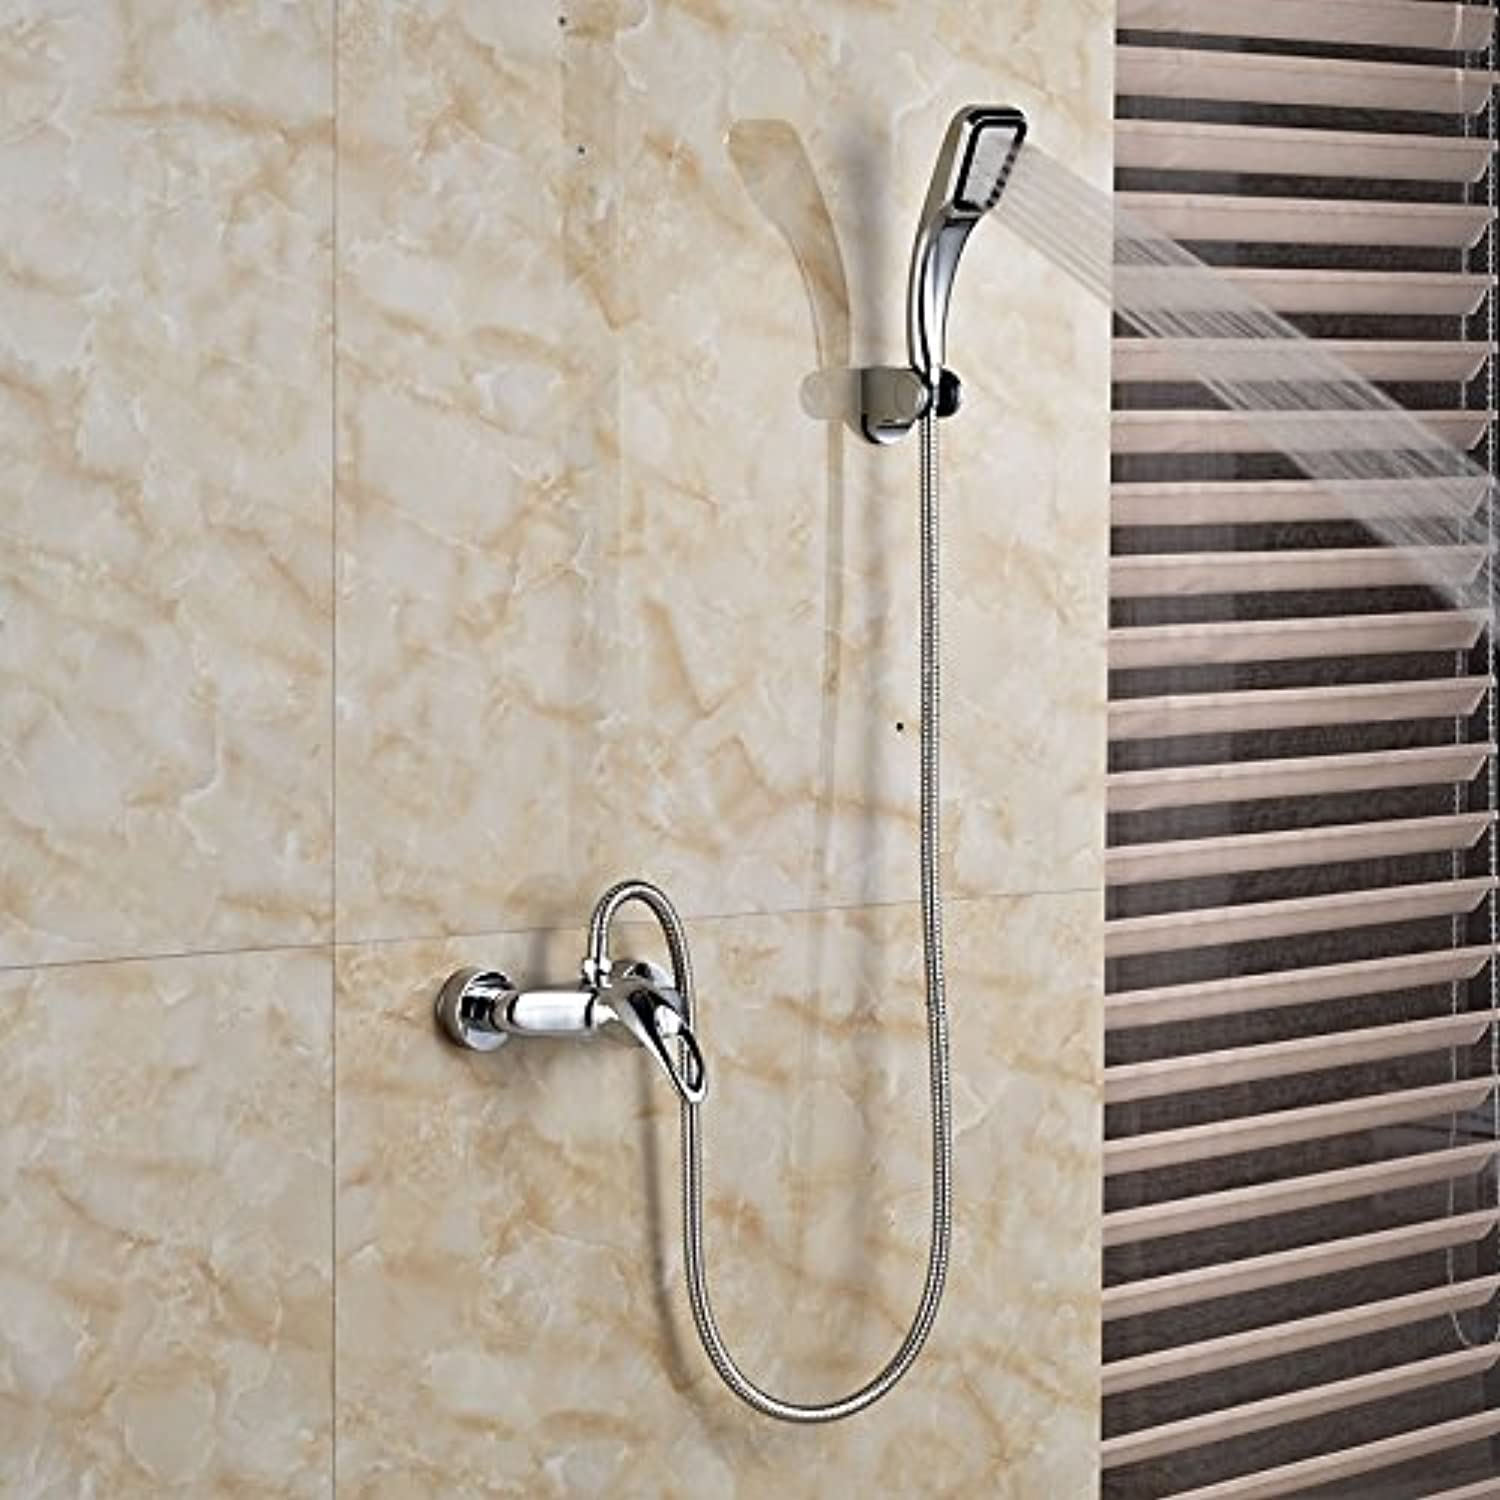 Singe Handle Dual Hole Hot Cold Shower Faucet Wall Mount Chrome Brass Hand Held Shower Mixer Taps,Clear